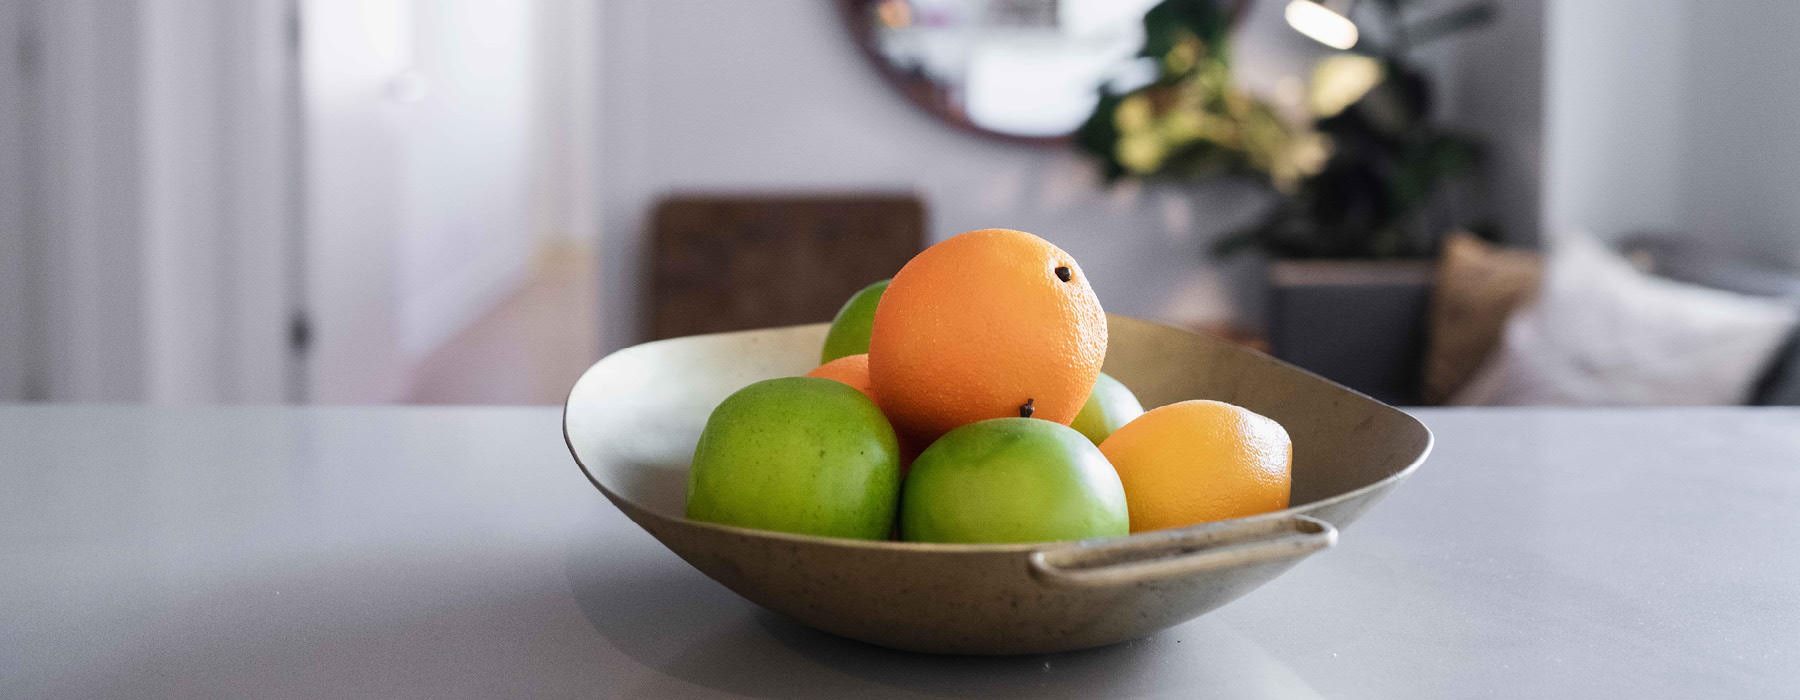 bowl of fruit sits on kitchen counter